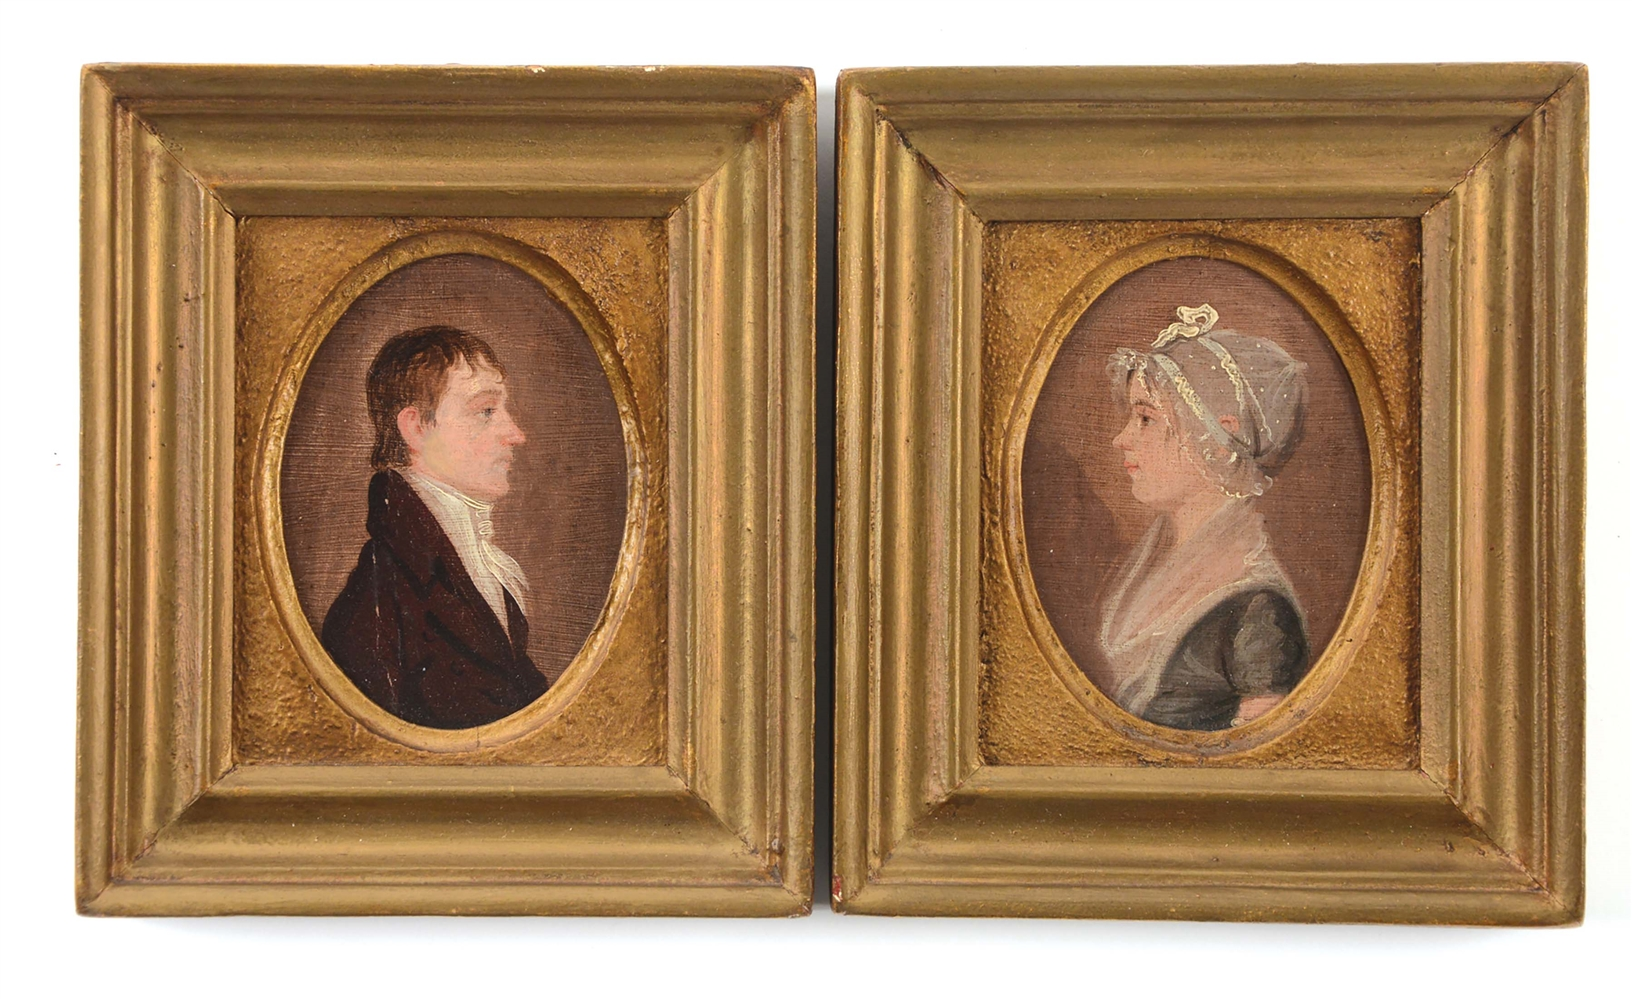 PAIR OF PORTRAITS OF UNUSUALLY SMALL SIZE ATTRIBUTED TO JACOB EICHOLTZ (1776 - 1842). LANCASTER, PENNSYLVANIA. OIL ON POPLAR PANEL. CIRCA 1808.